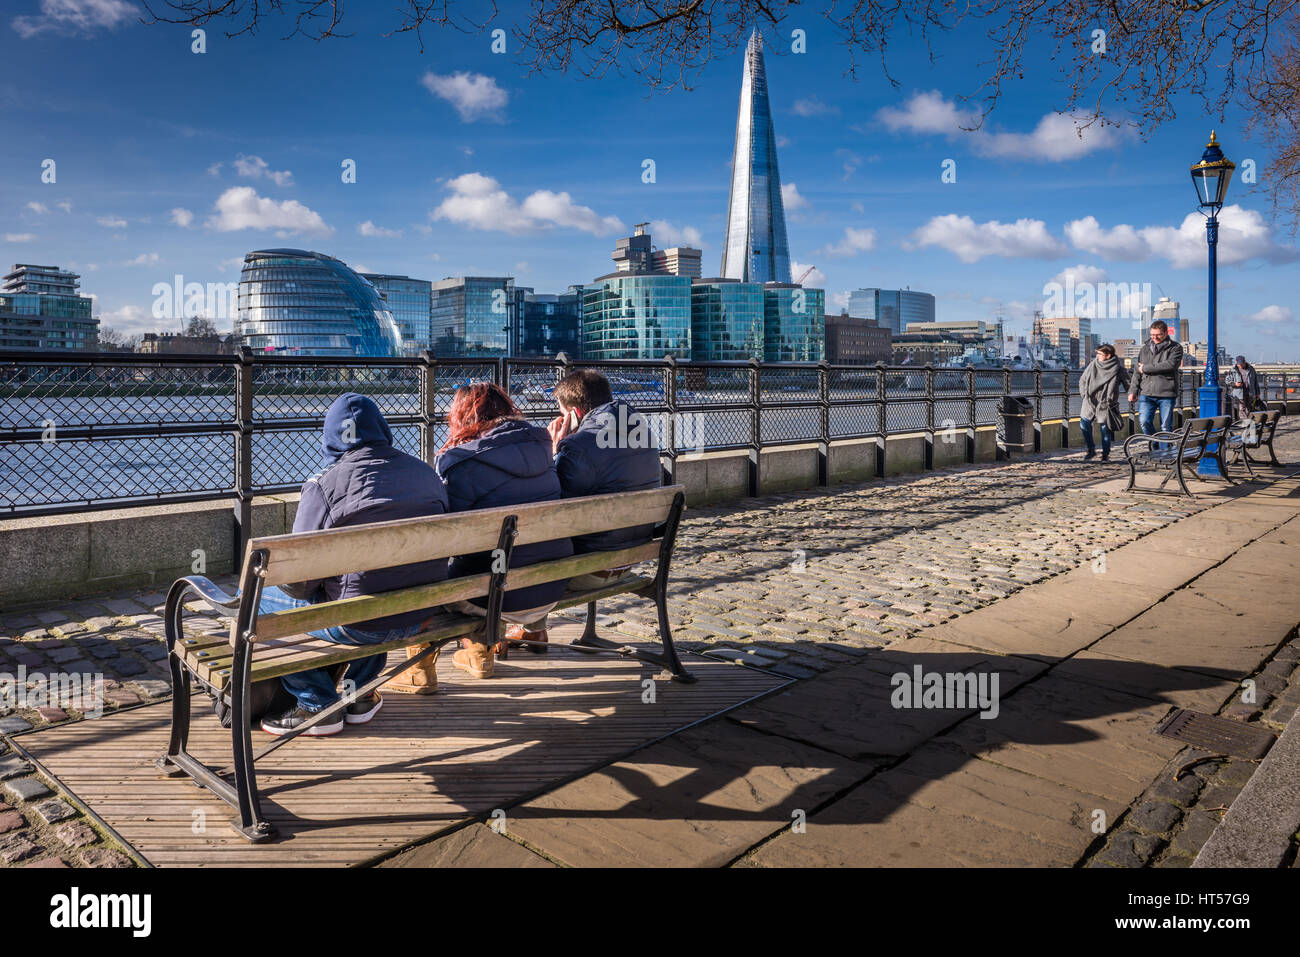 People enjoy the sunshine on the pathway outside the Tower of London on a cold but bright day in the capital city Stock Photo